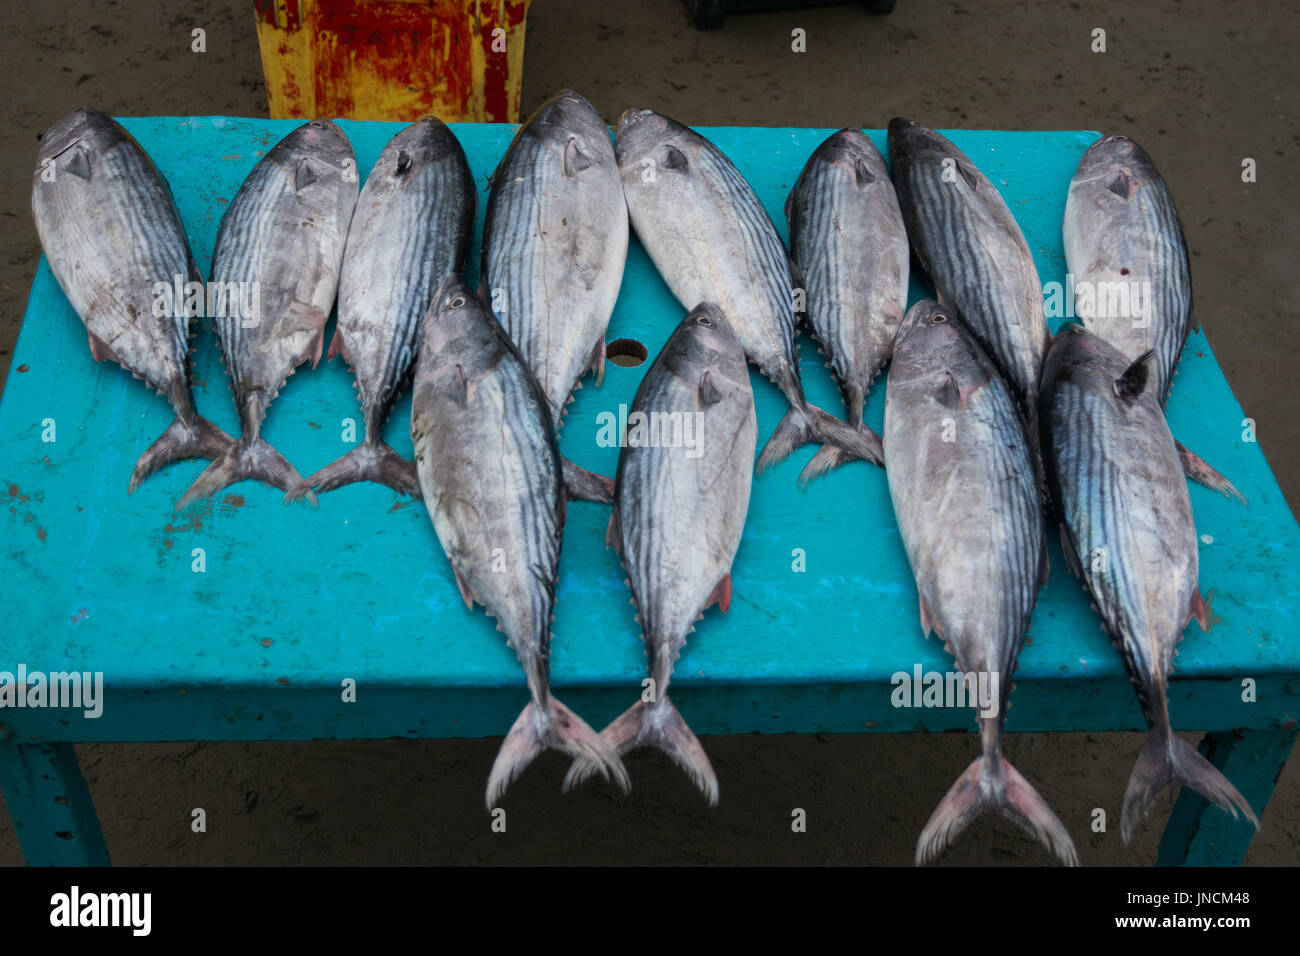 Fishing Market at Puerto Lopez, Ecuador - Stock Image